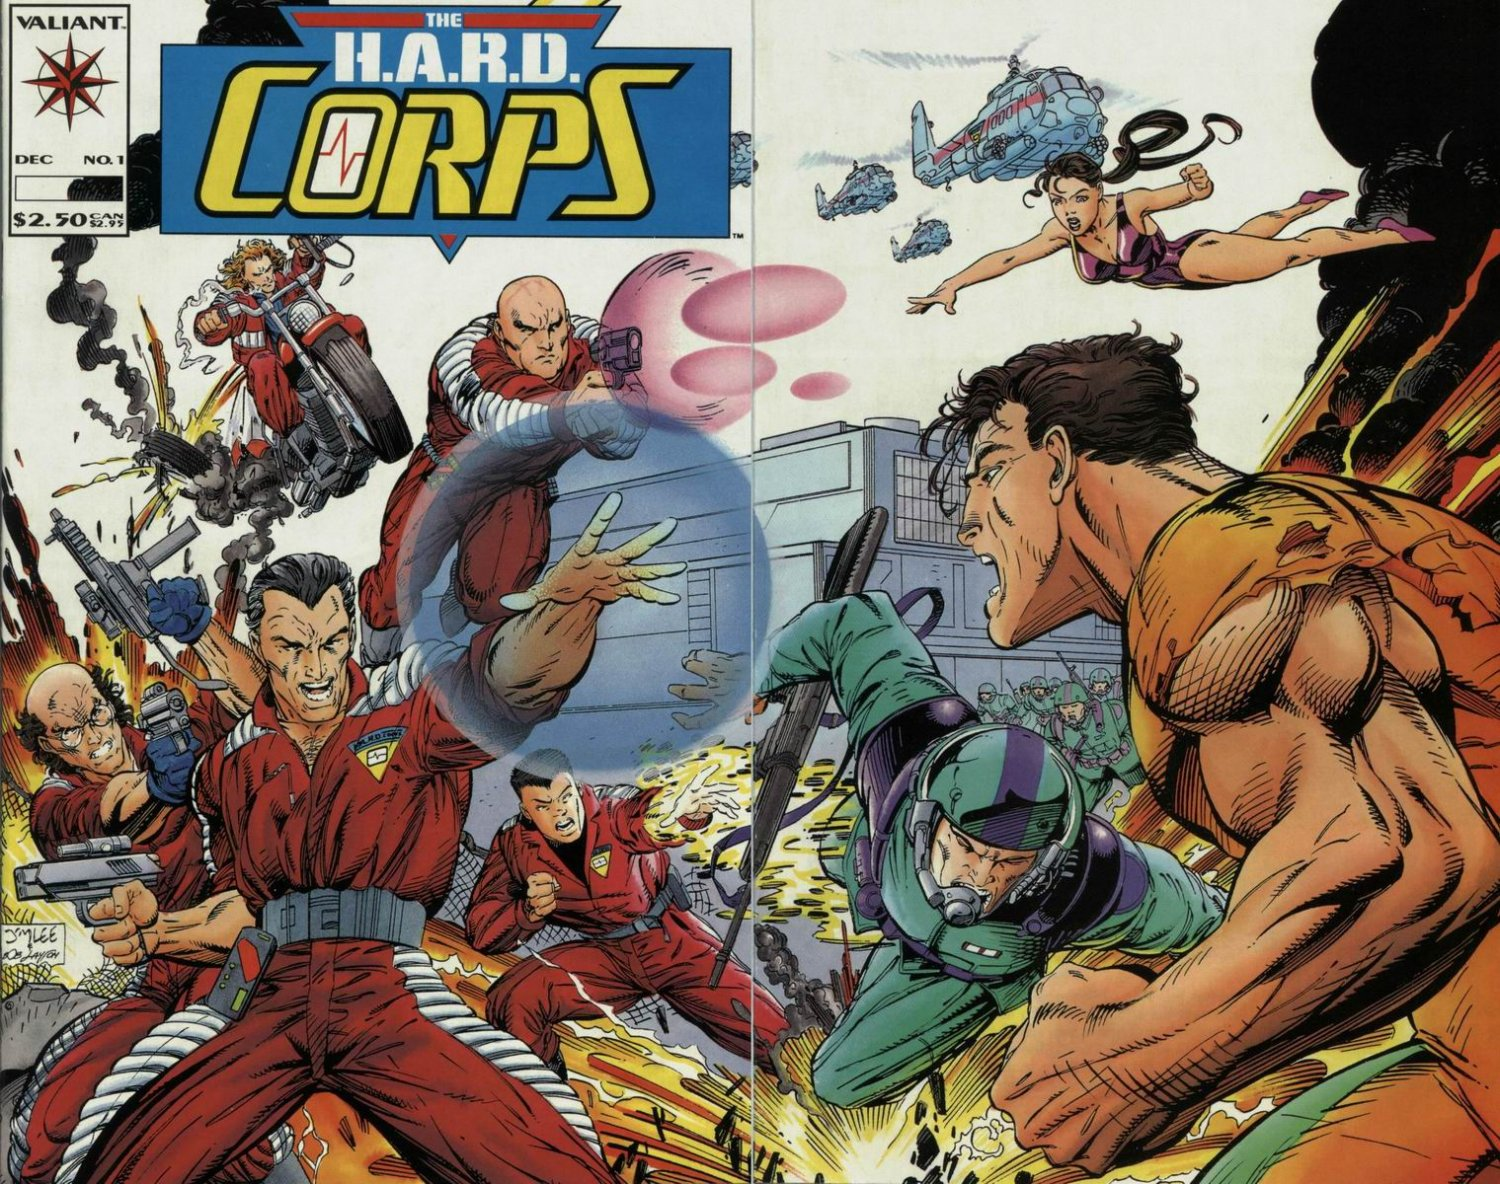 FULL SETS:  H.A.R.D. Corps, Secret Weapons, Punx. Valiant Comics on CD, CDisplay format, For Sale